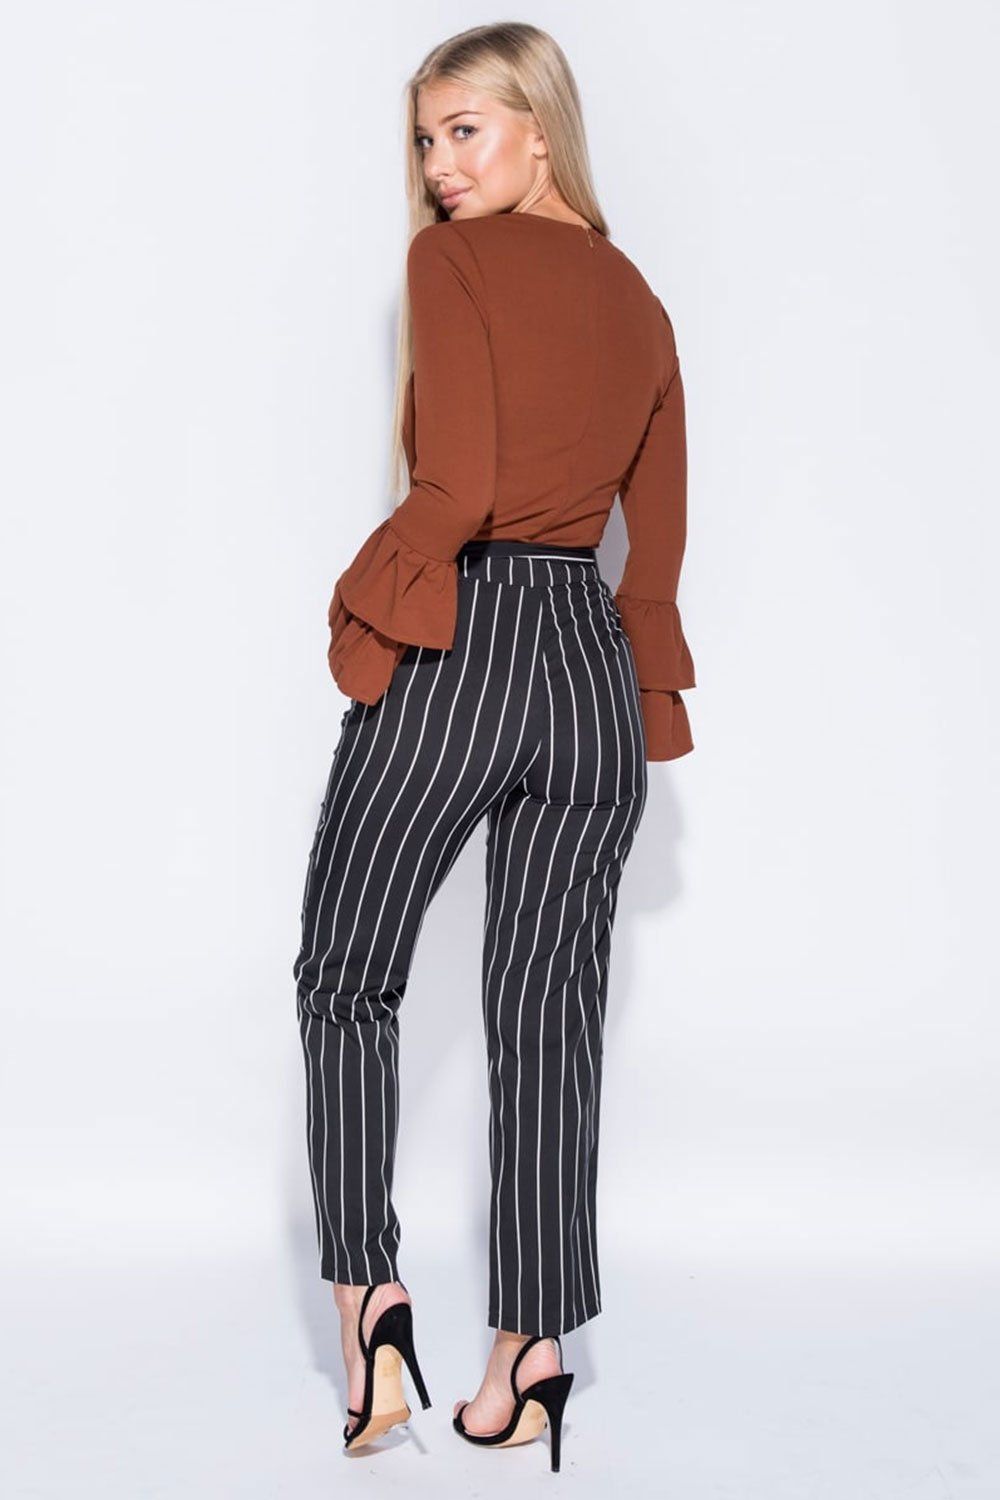 Shop Parisian Trousers Parisian Paperbag Waist Pin Stripe Trousers Second Thread